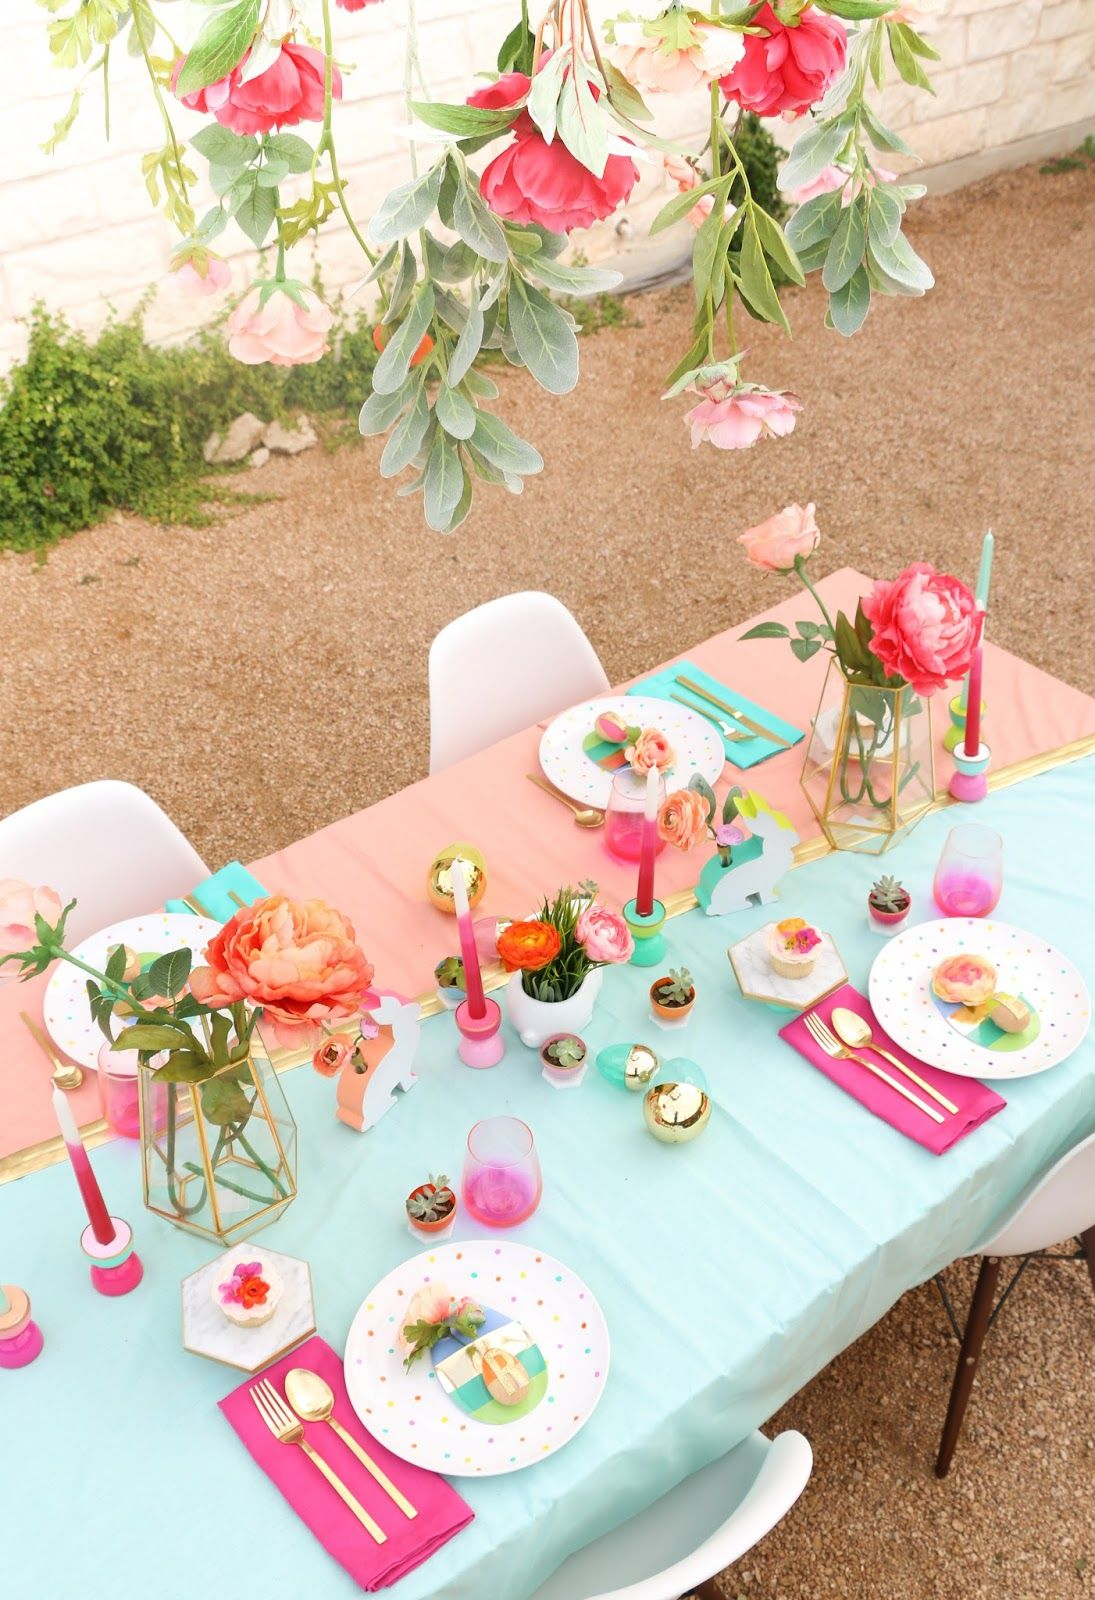 A Kailo Chic Life Style It - A Spring Table Setting : spring table setting - pezcame.com